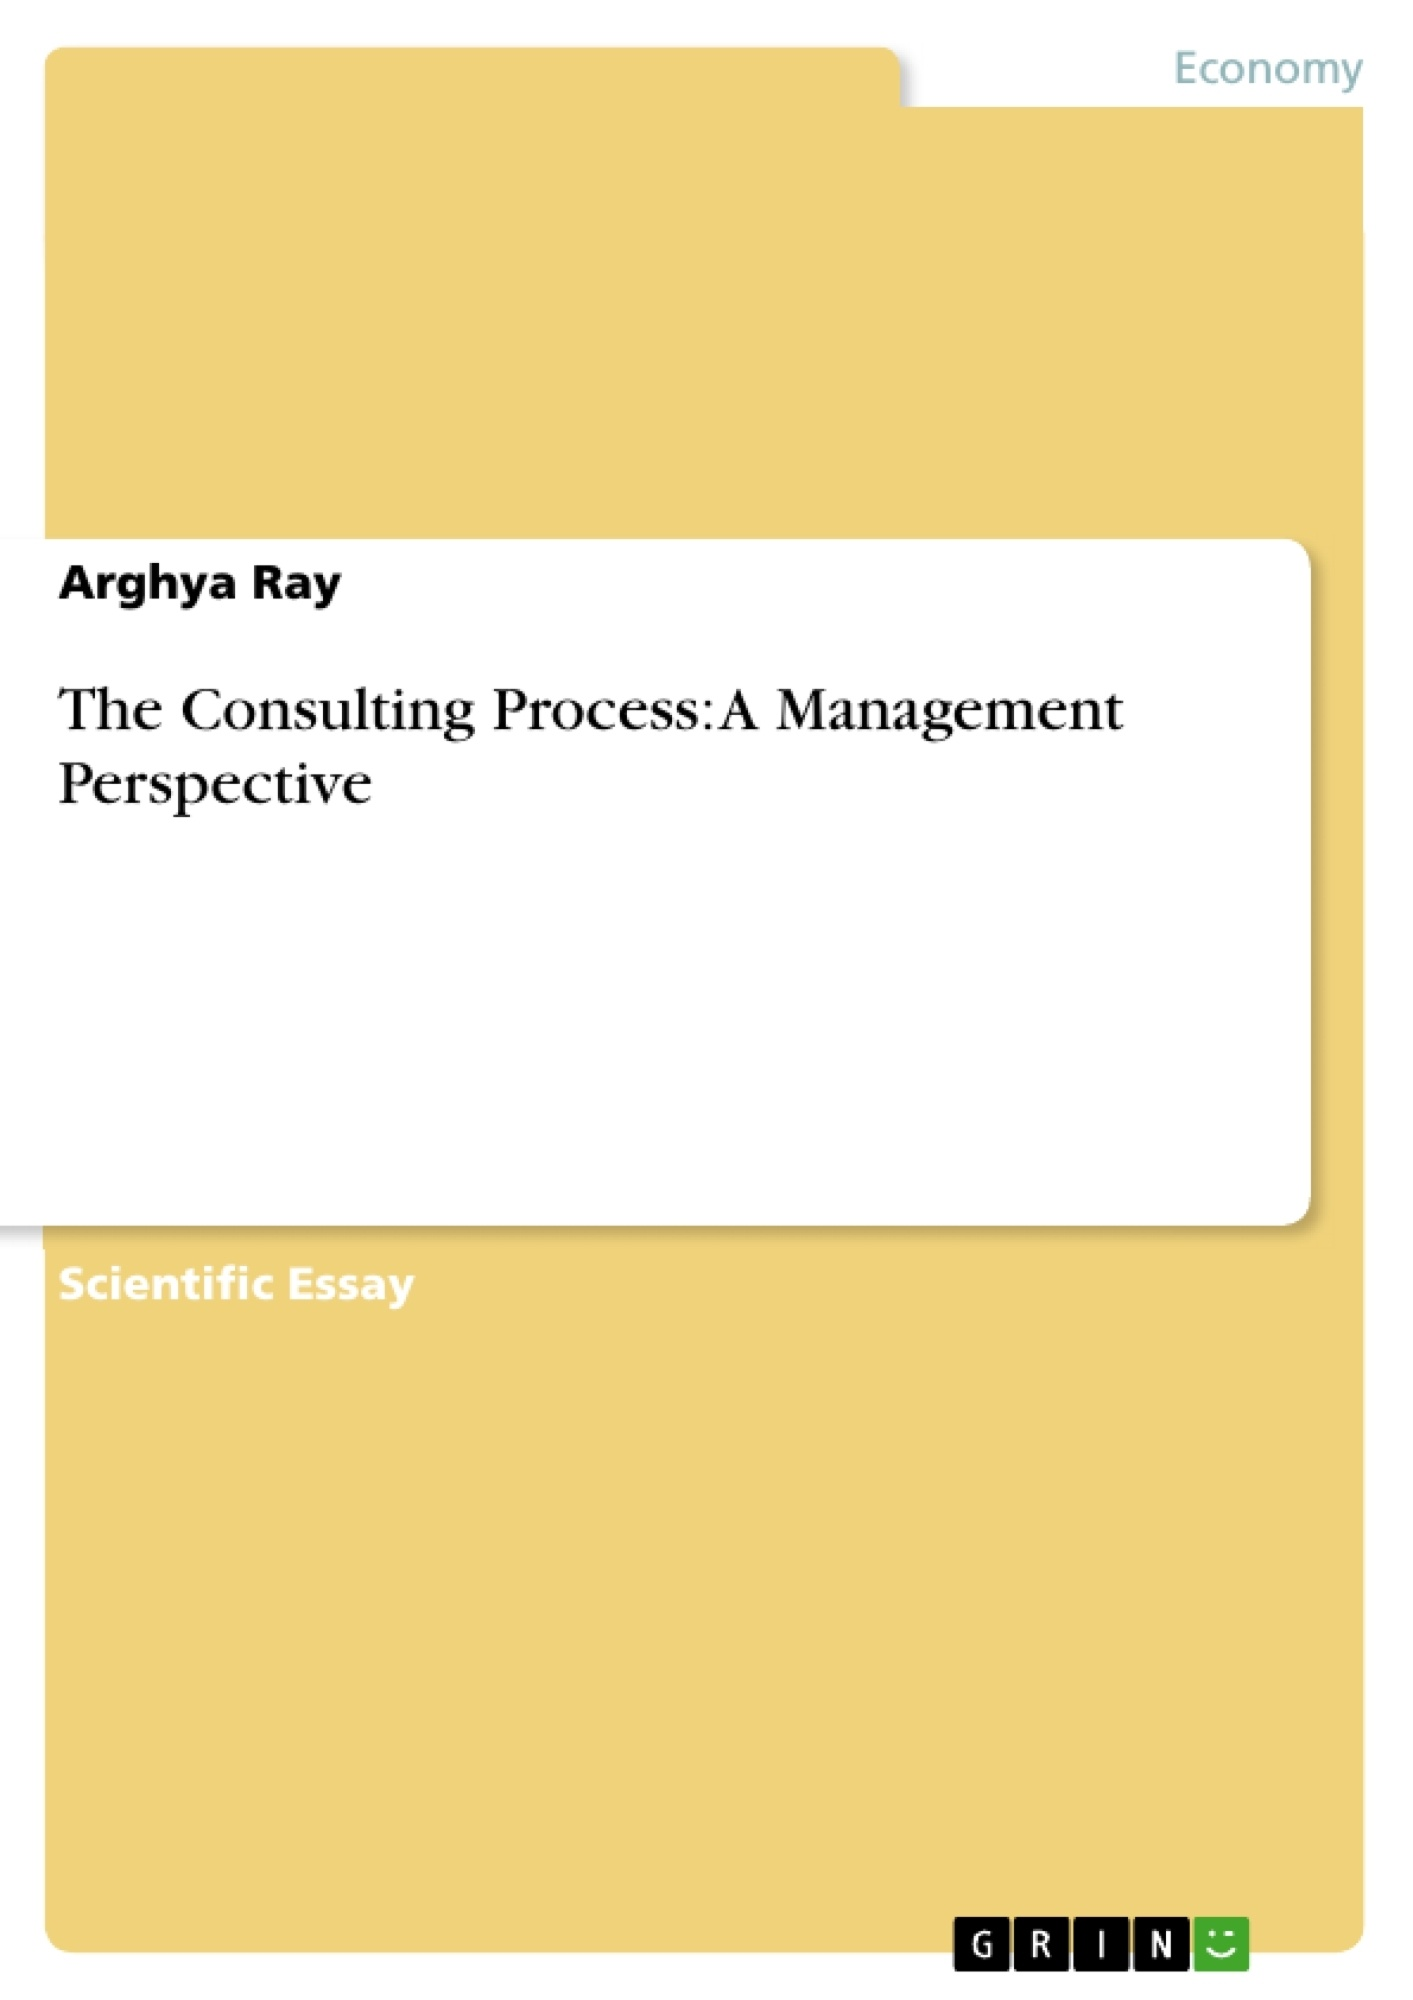 Title: The Consulting Process: A Management Perspective